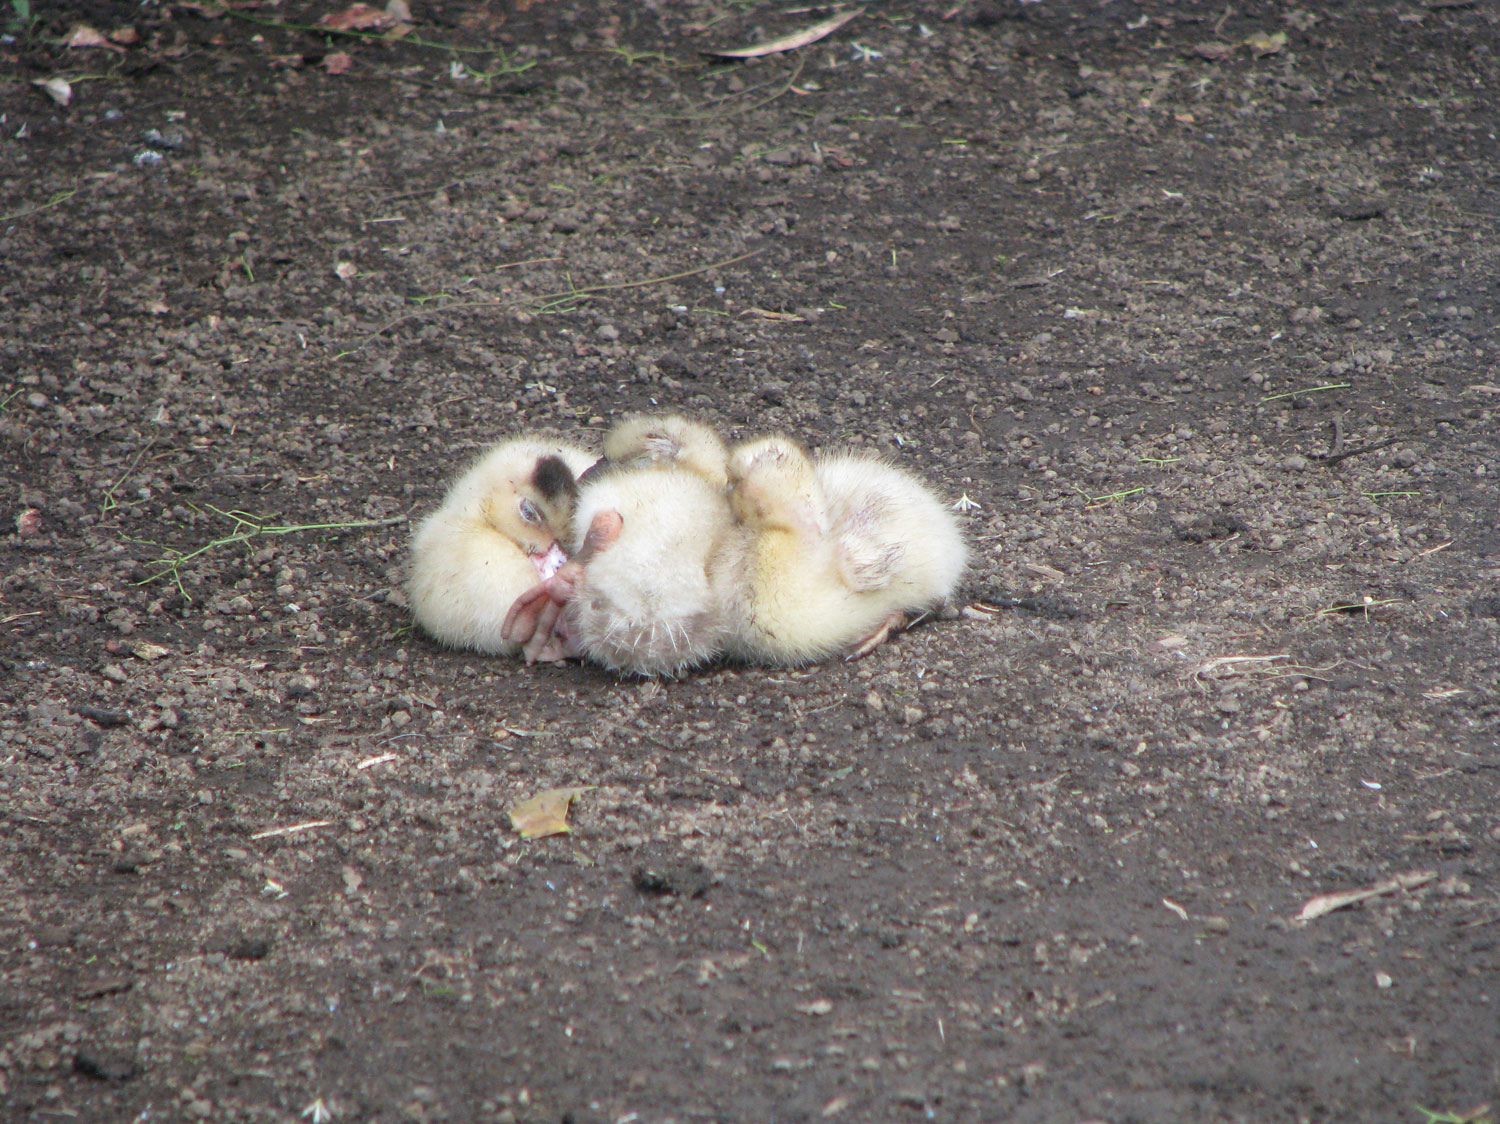 Lots of baby chicks (or ducks)